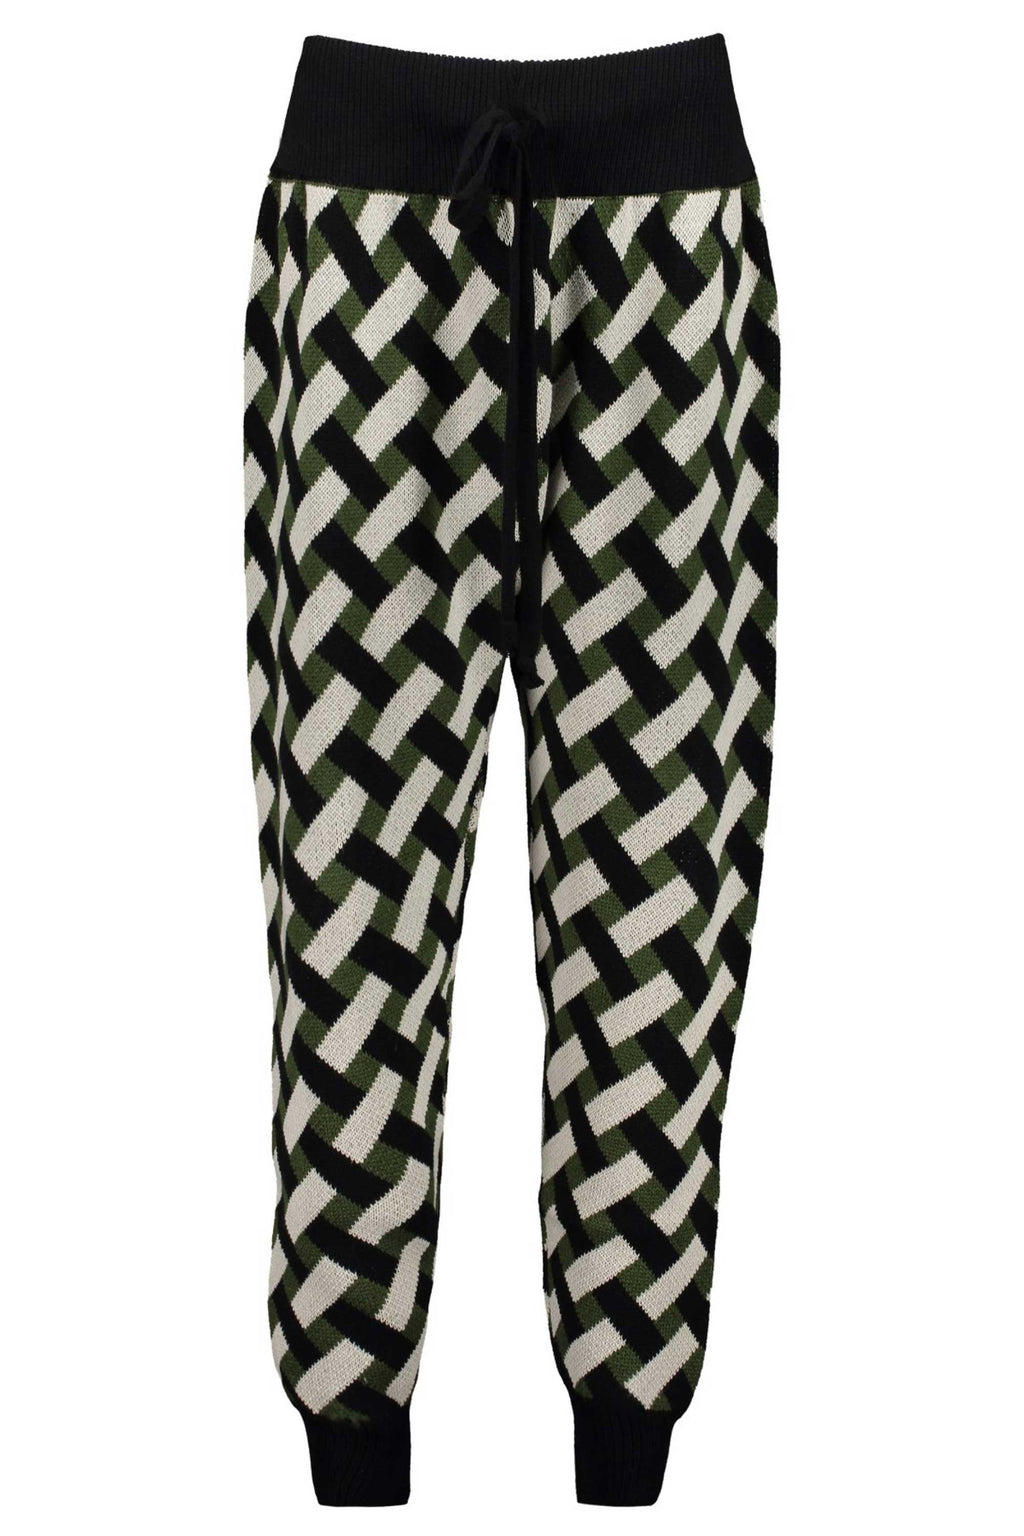 KNITTED PANT - GRN/BLK/ECRU